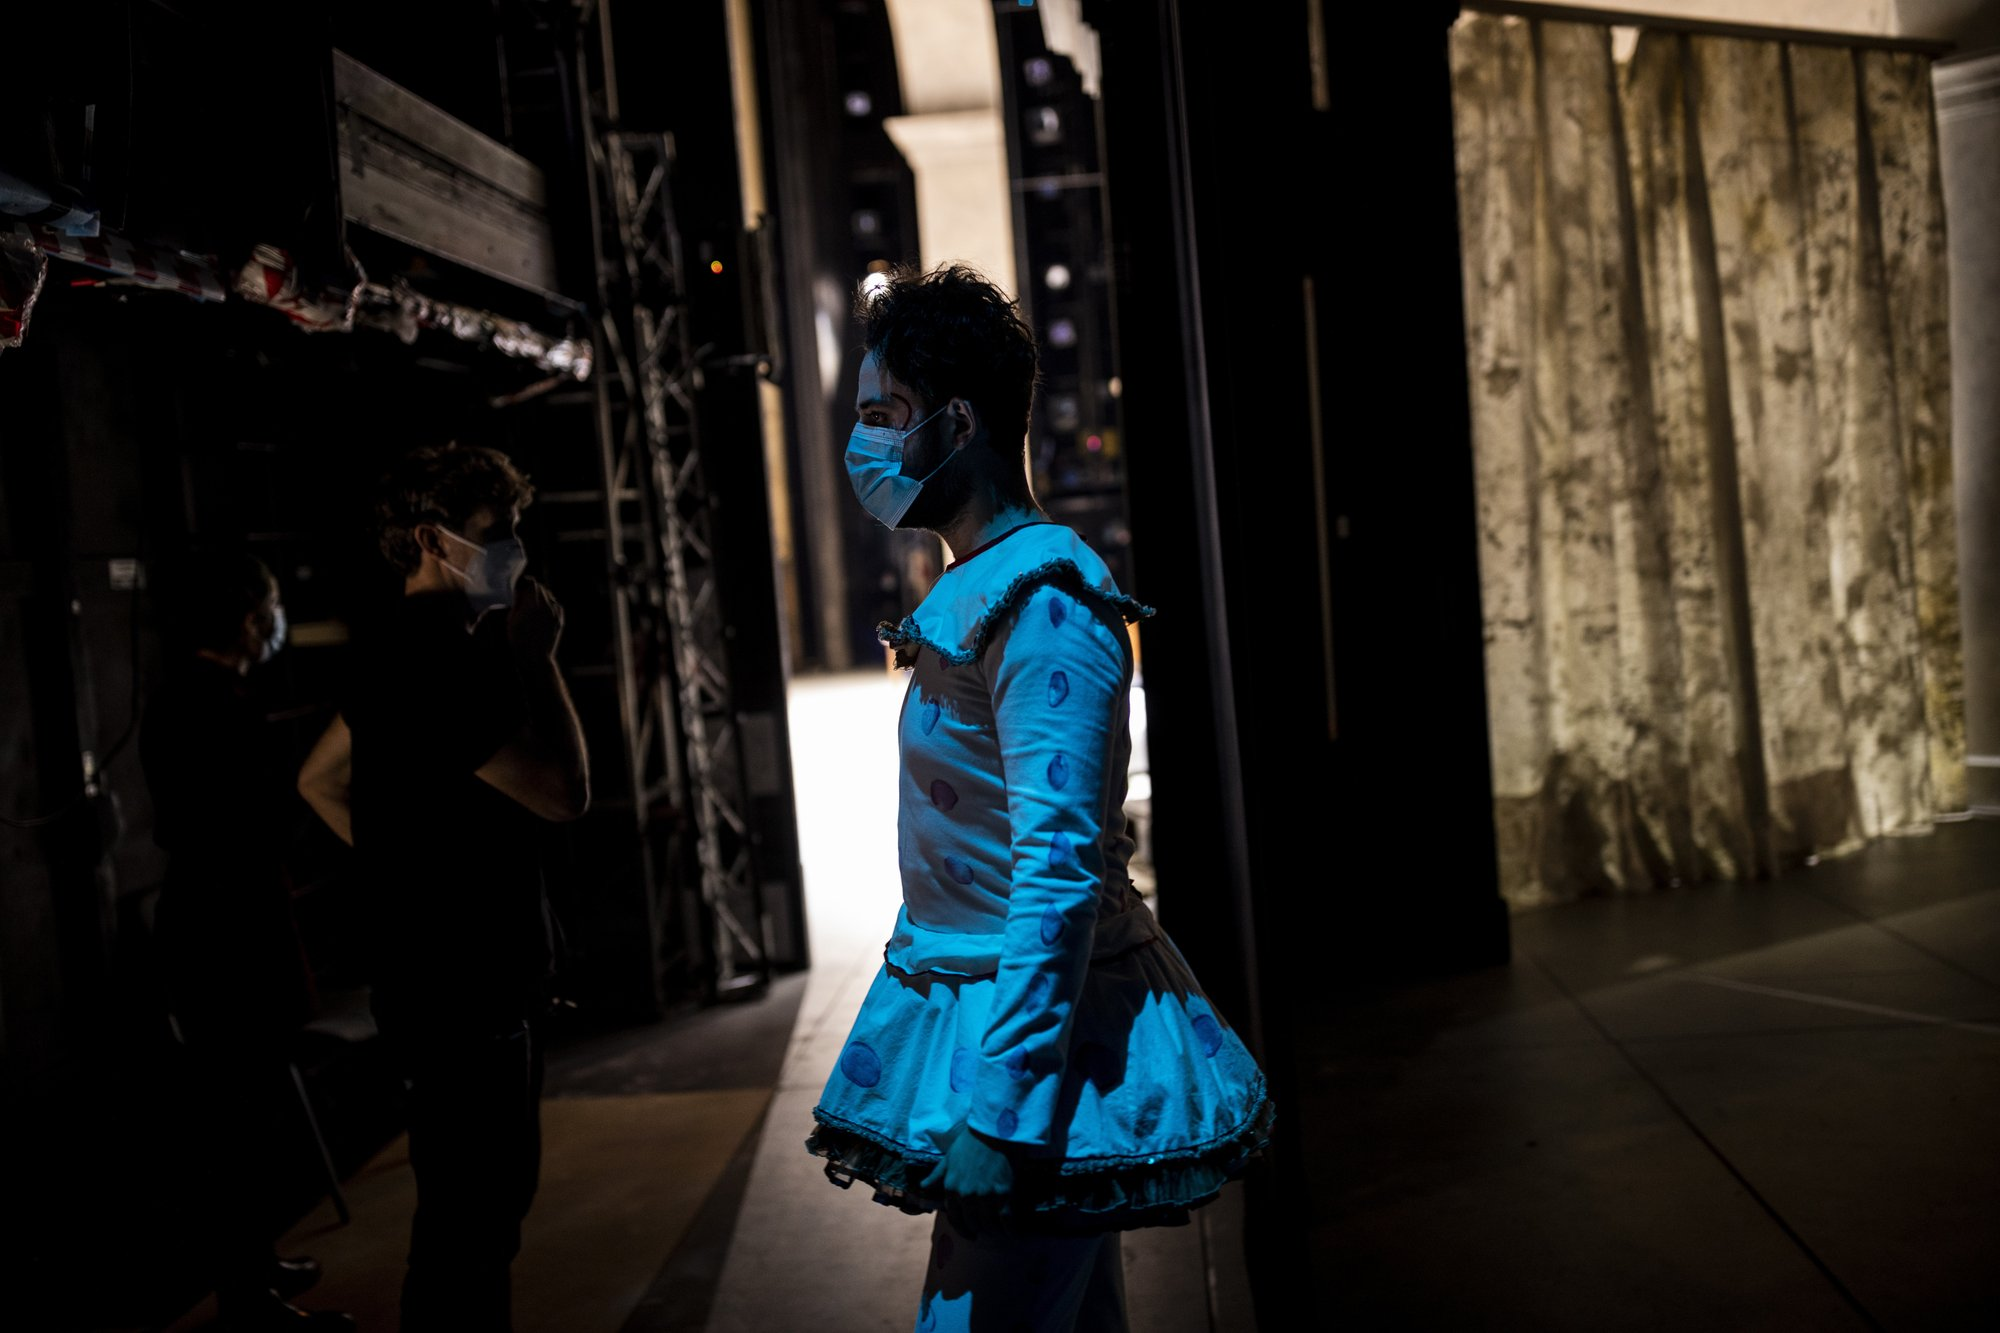 The show goes on at Madrid´s opera house despite pandemic